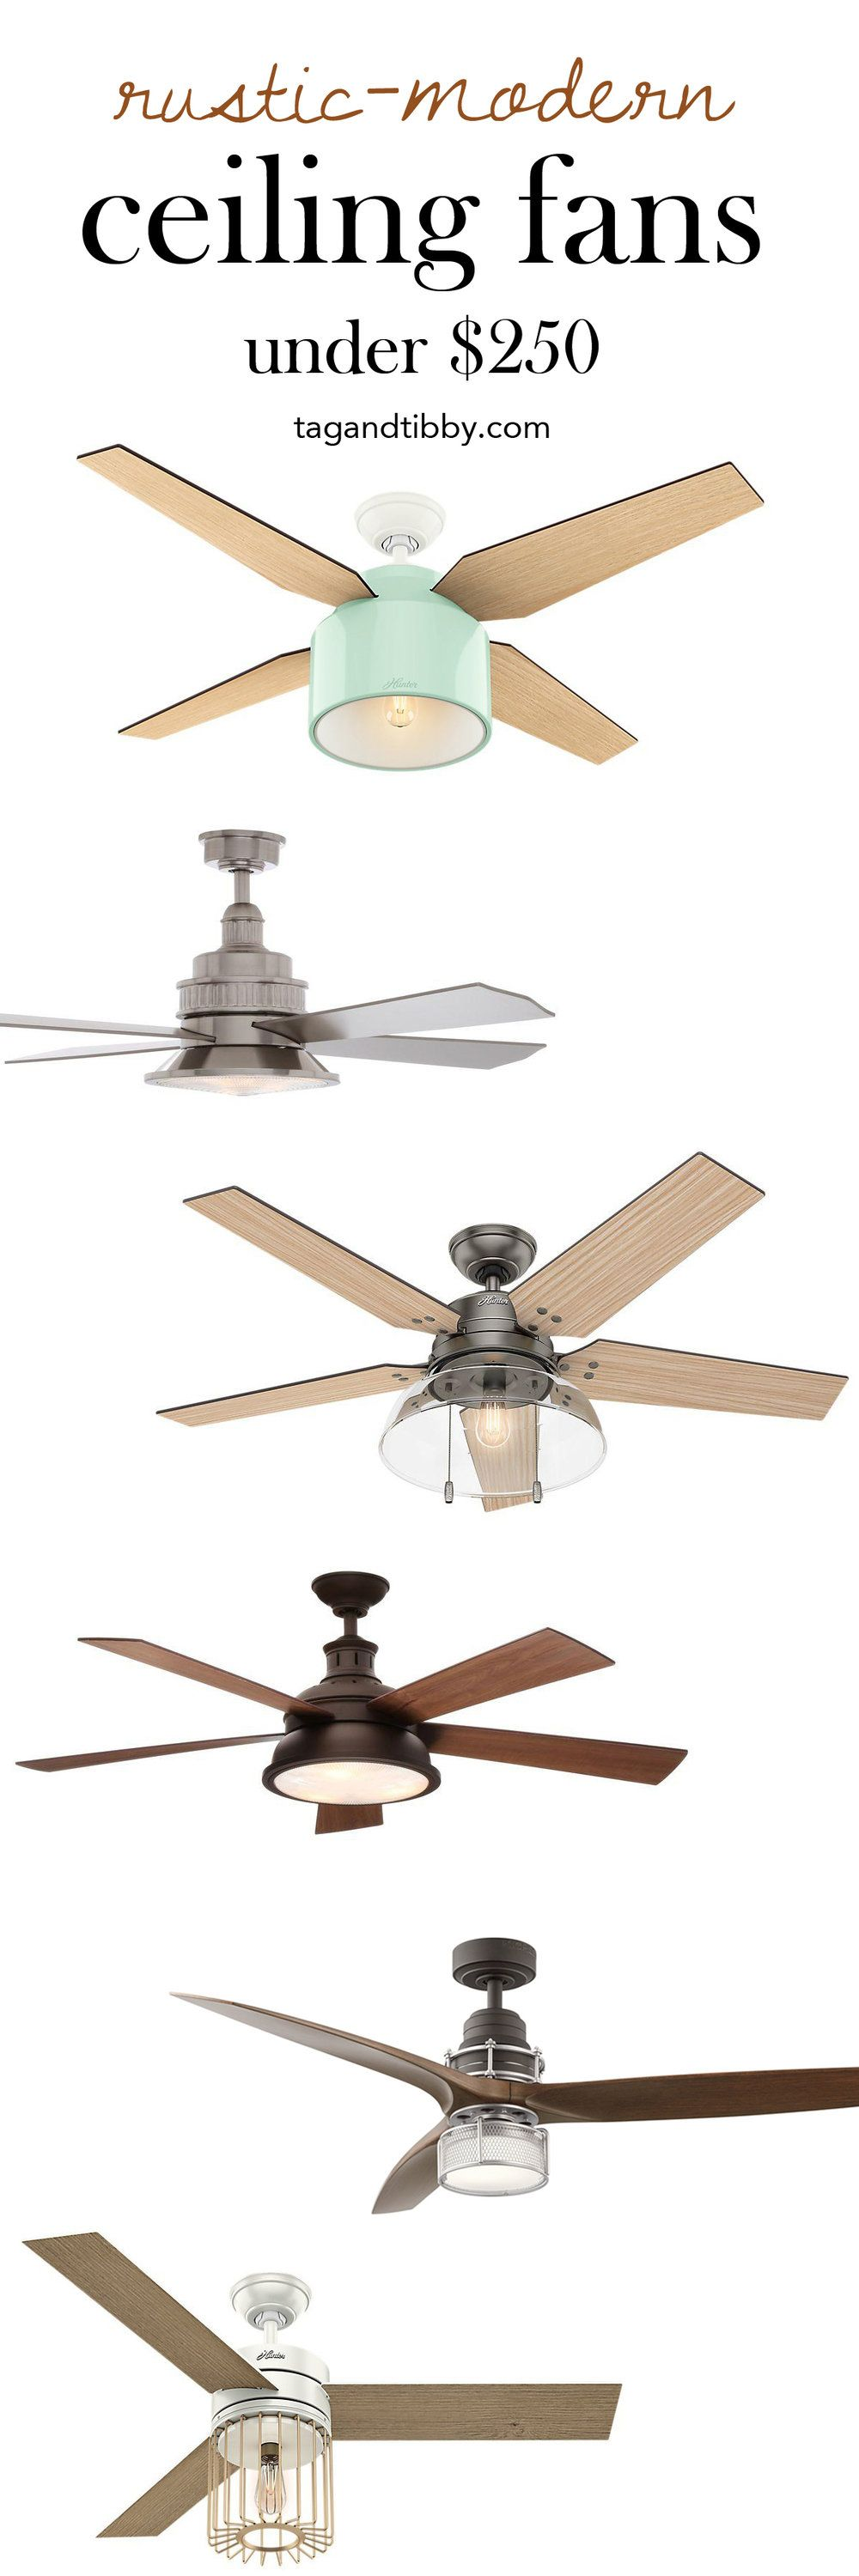 vintage industrial ceiling fans trending for october 2015 a